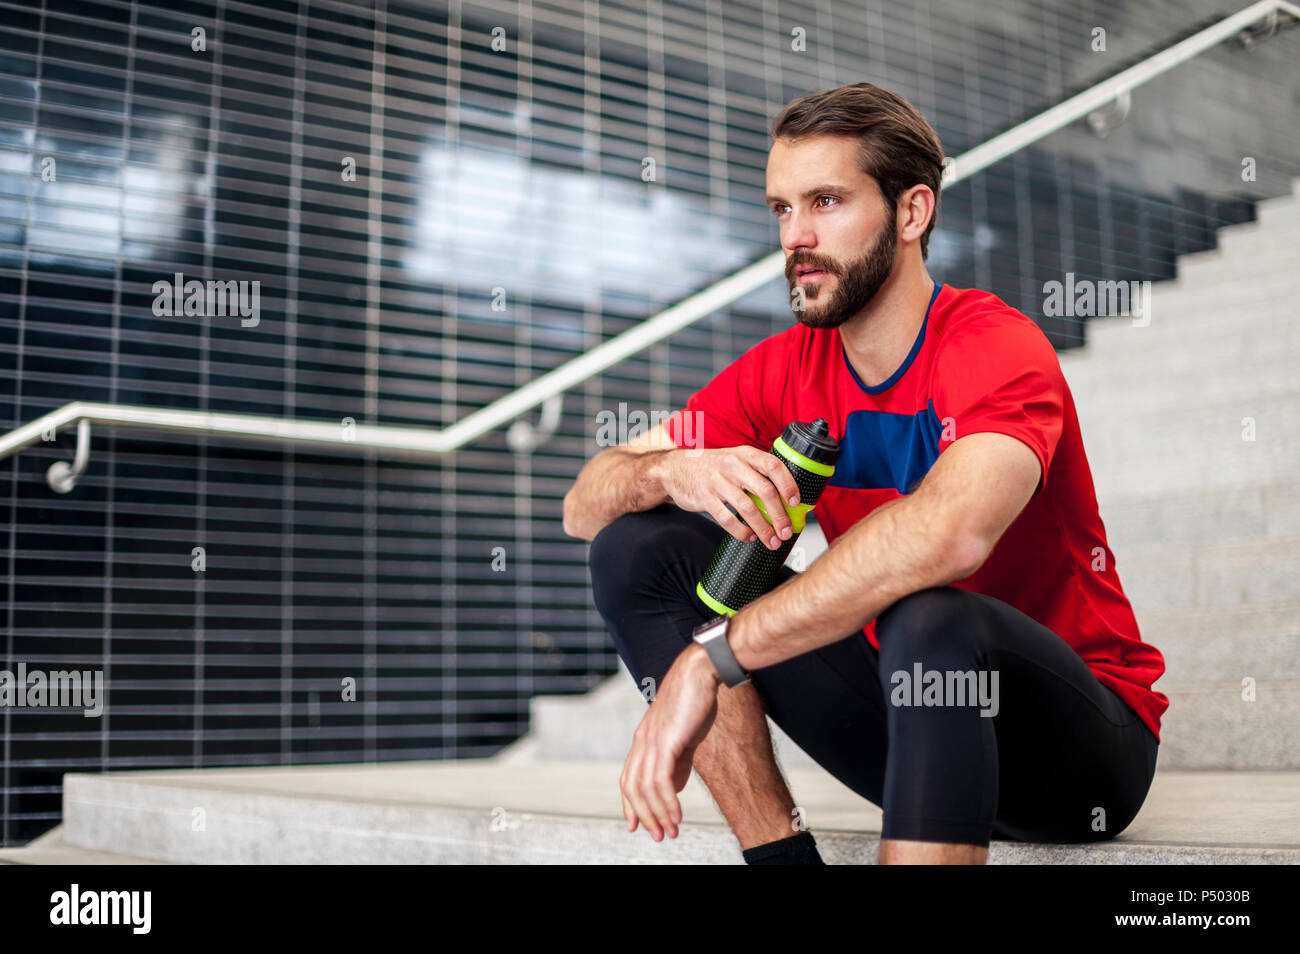 Man sitting on stairs having a break from running - Stock Image